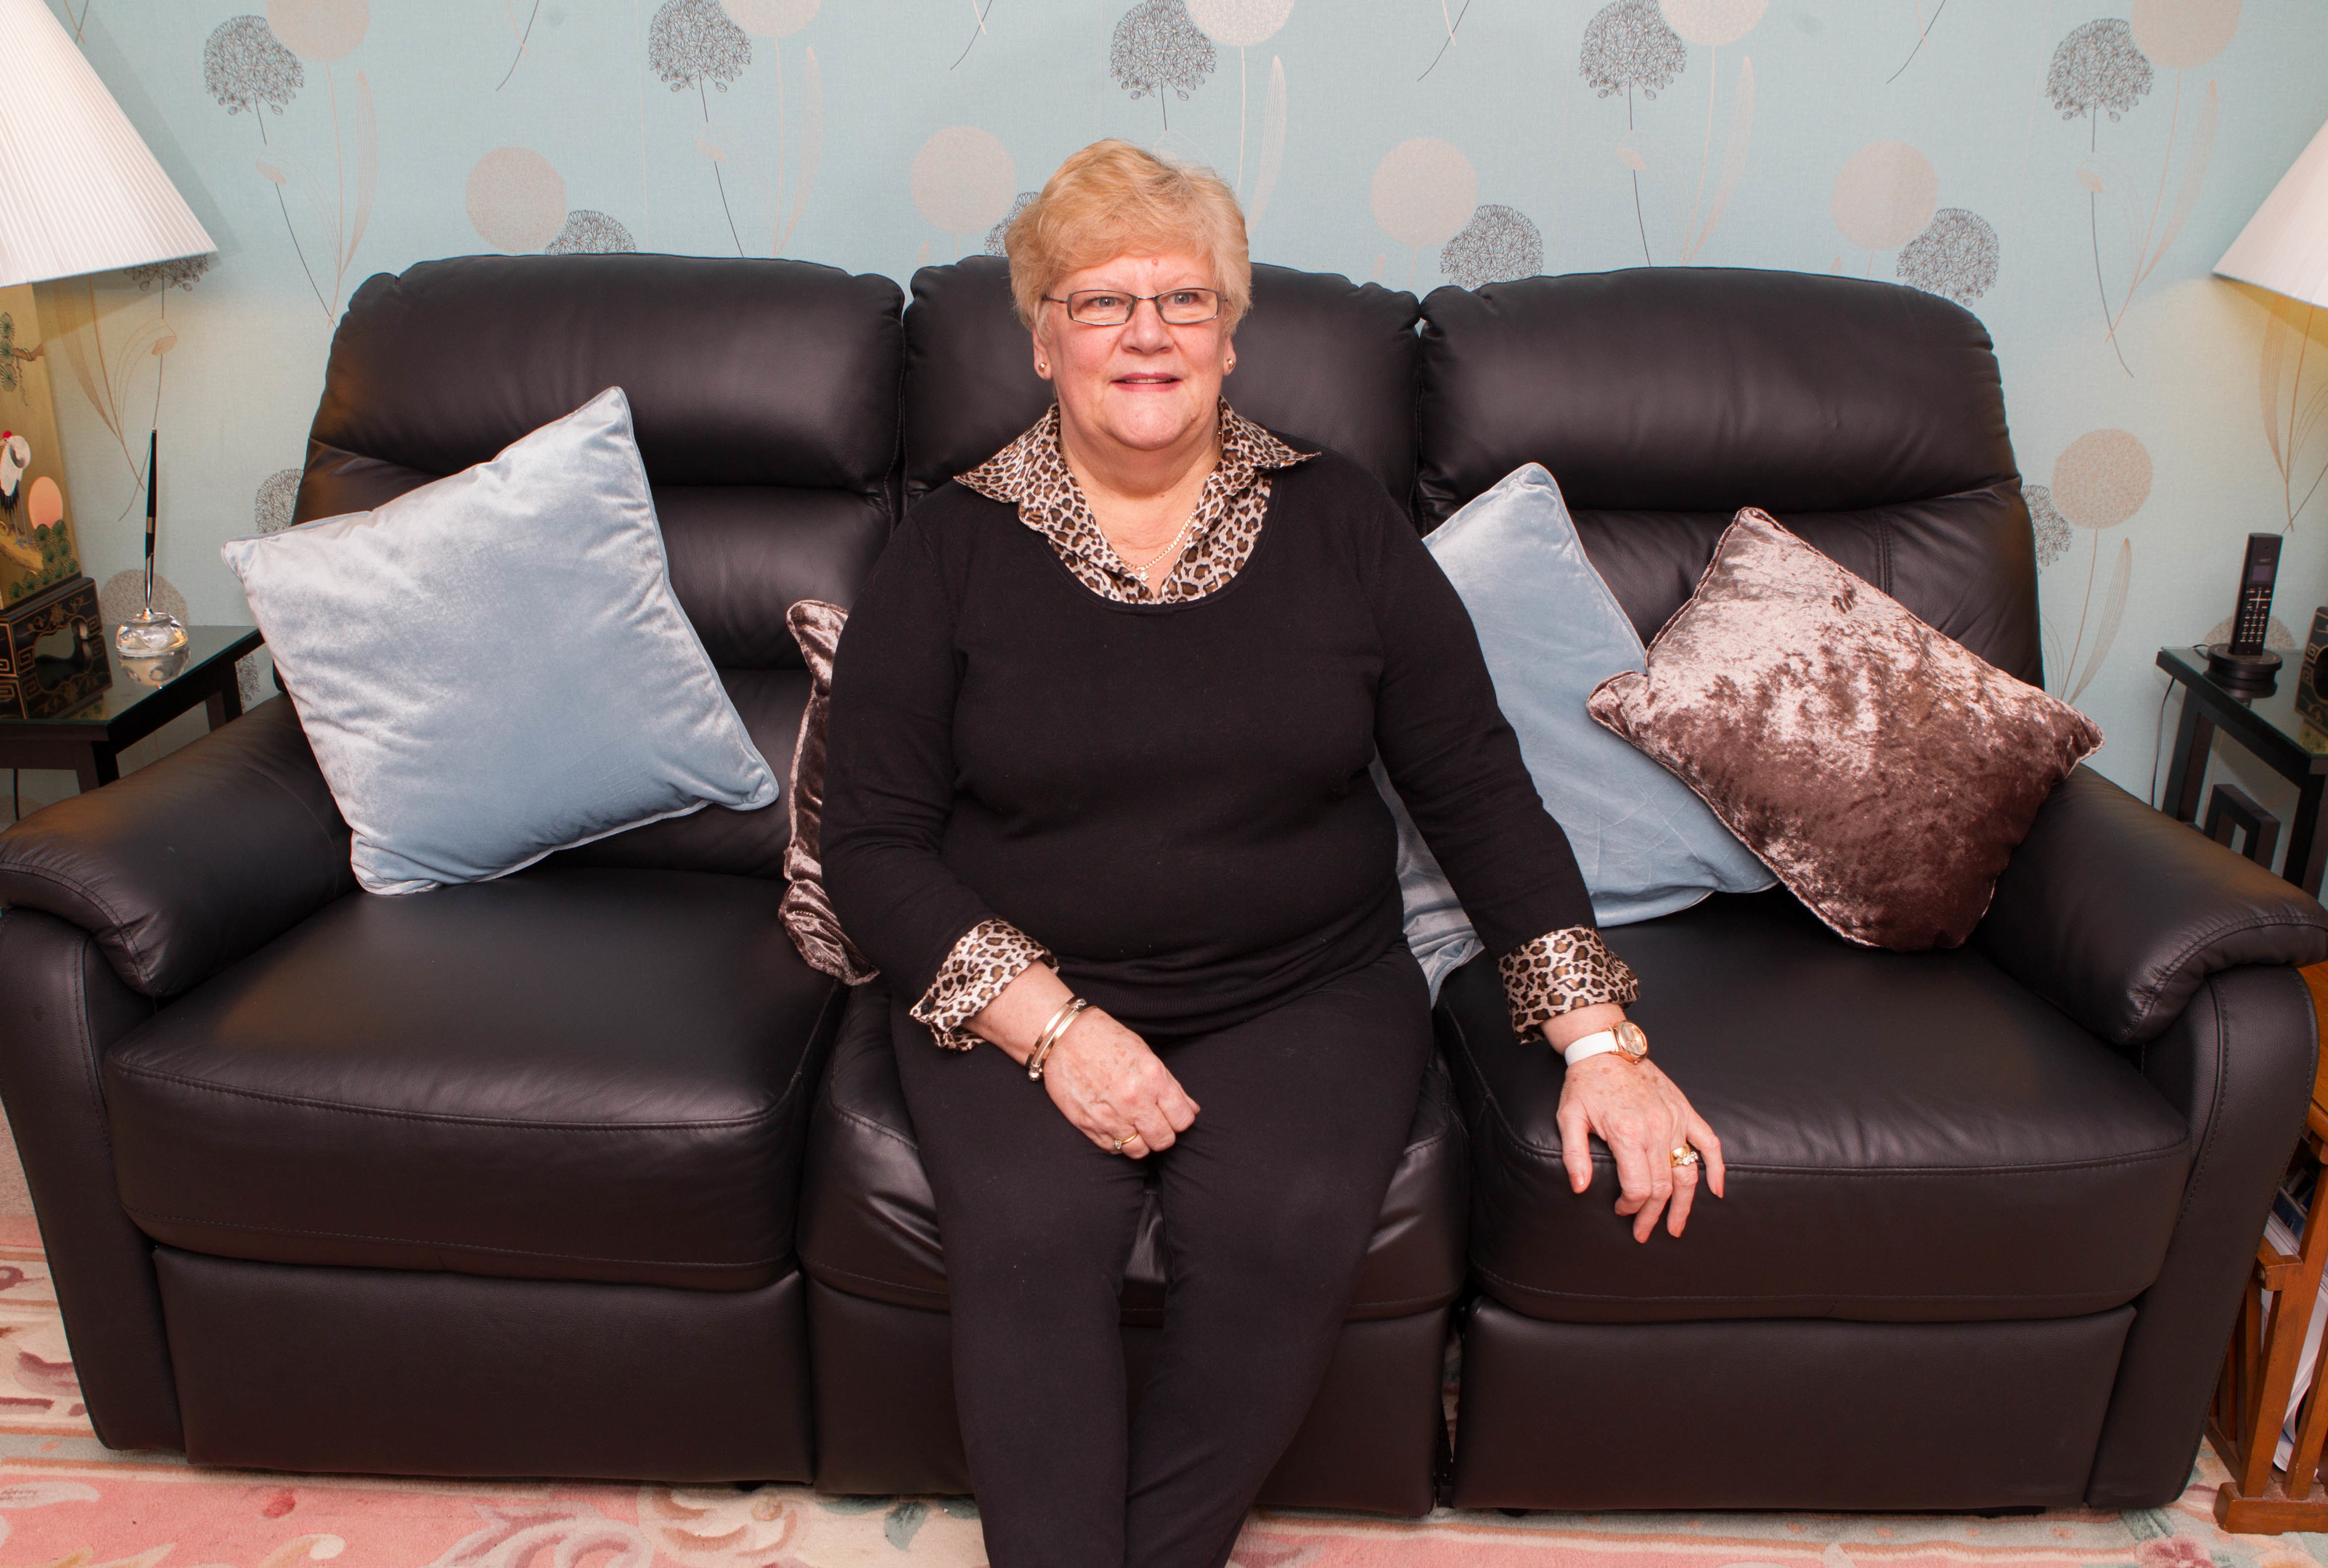 Janette Morrison with her new sofa thank to Raw Deal (Chris Austin / DC Thomson)